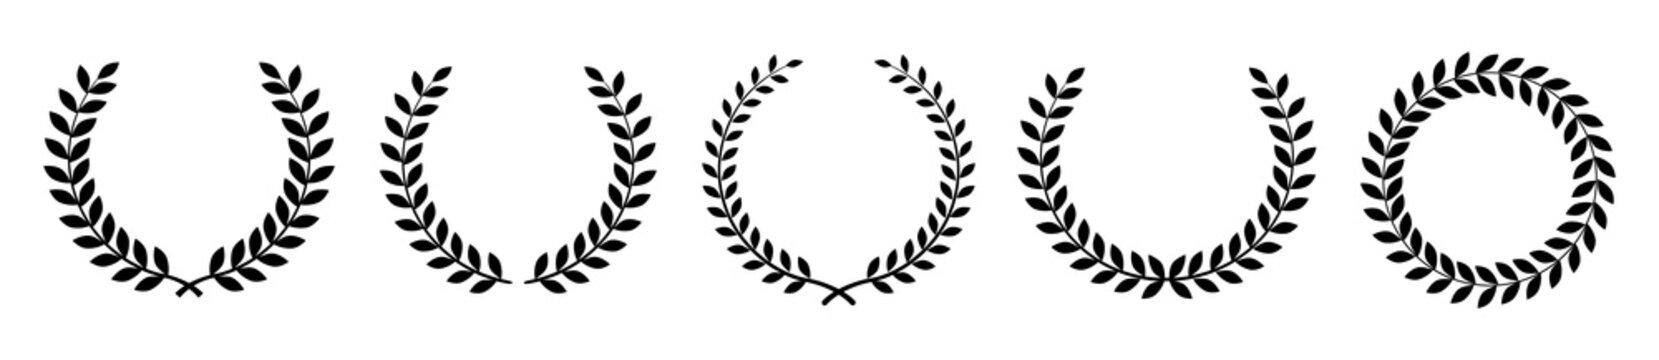 Laurel wreath of victory icon. Set black silhouette circular laurel foliate, wheat and oak wreaths depicting an award, achievement, heraldry, nobility. Emblem floral greek branch flat style